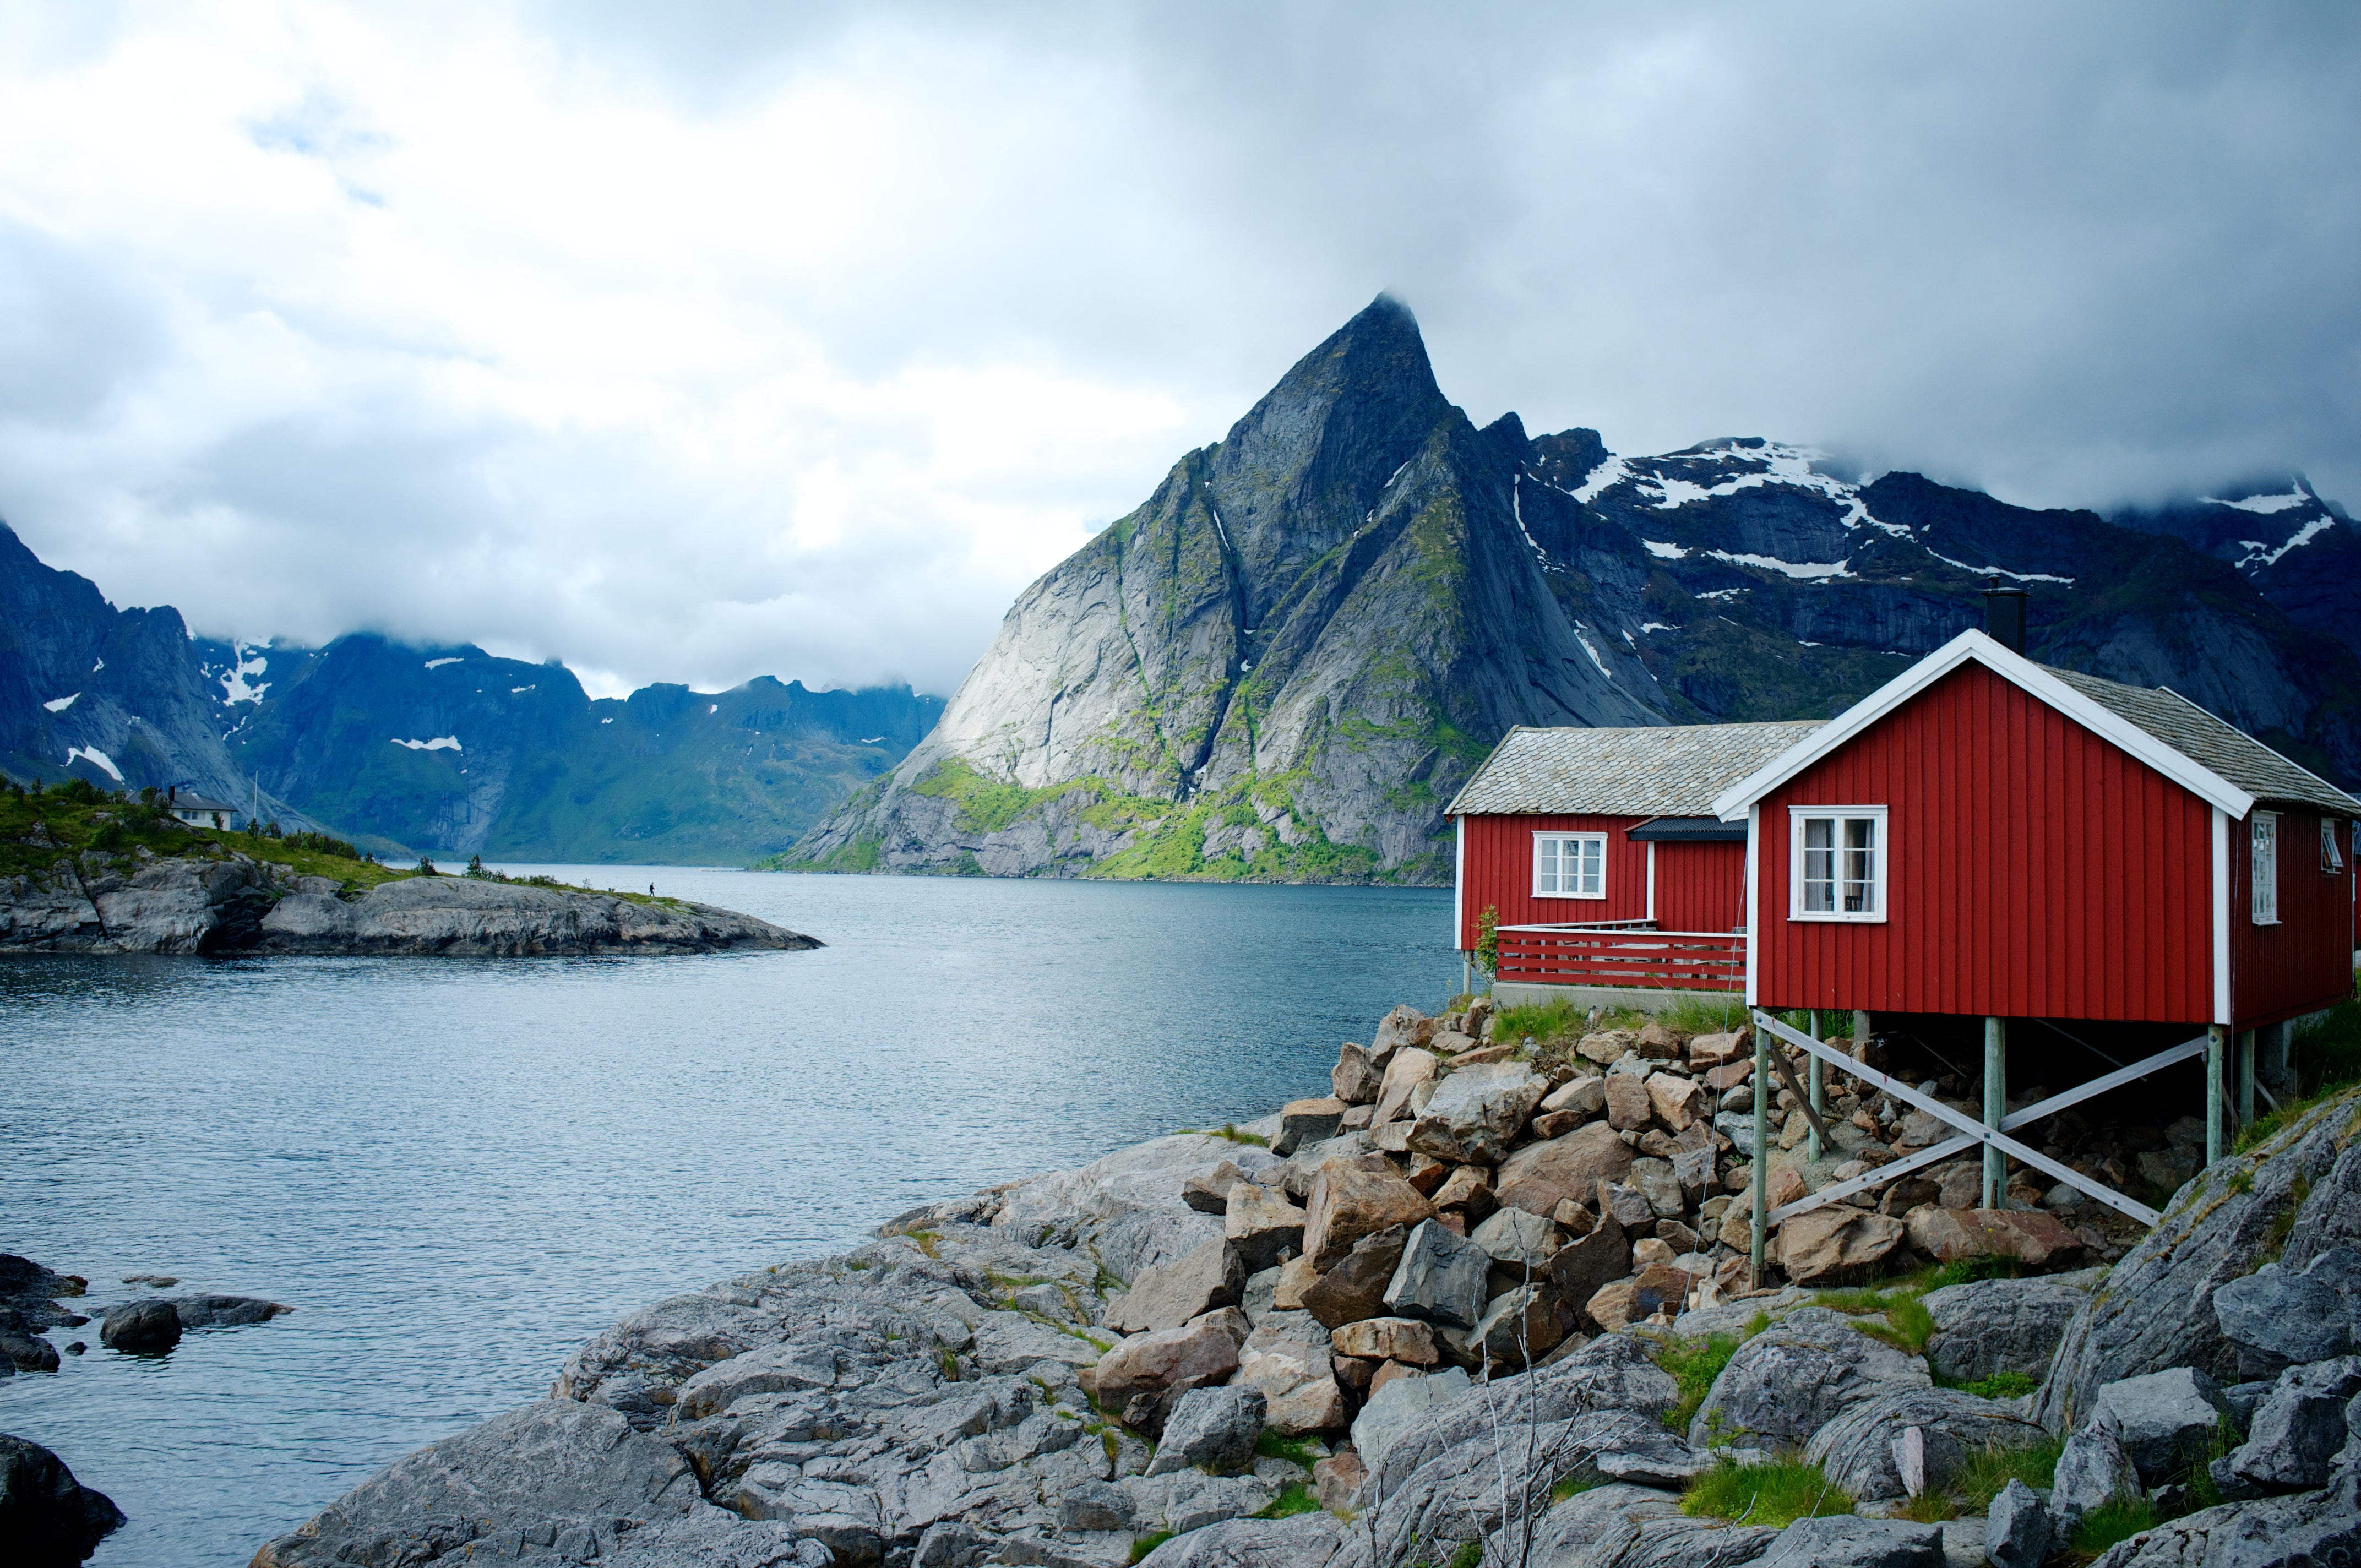 red and white wooden house in front of body of water